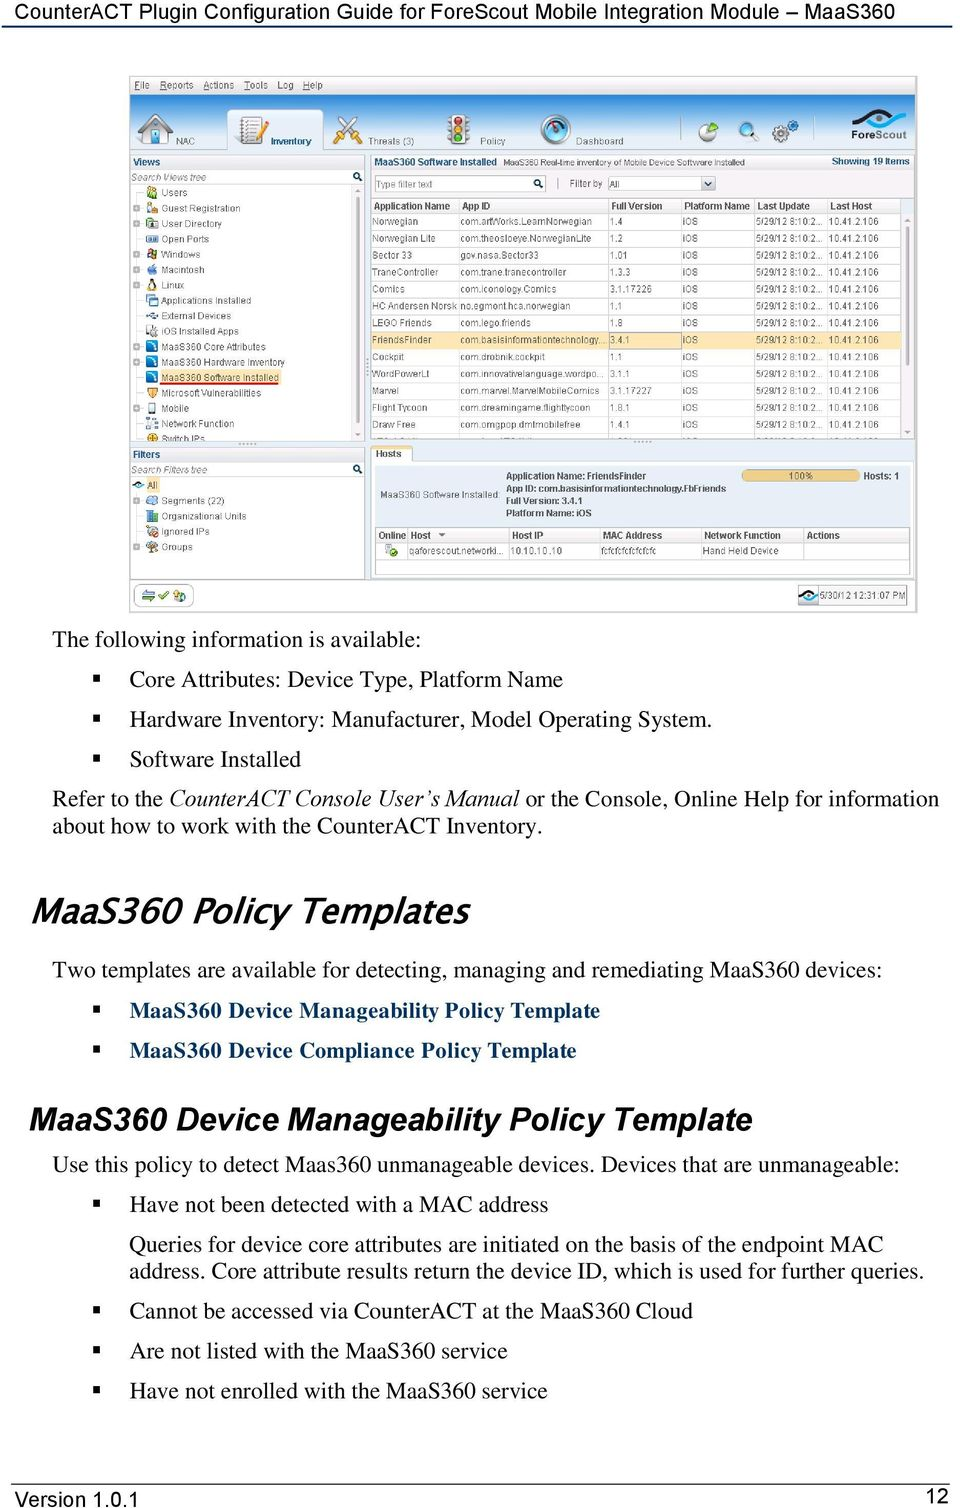 Policy Templates Two templates are available for detecting, managing and remediating devices: Device Manageability Policy Template Device Compliance Policy Template Device Manageability Policy